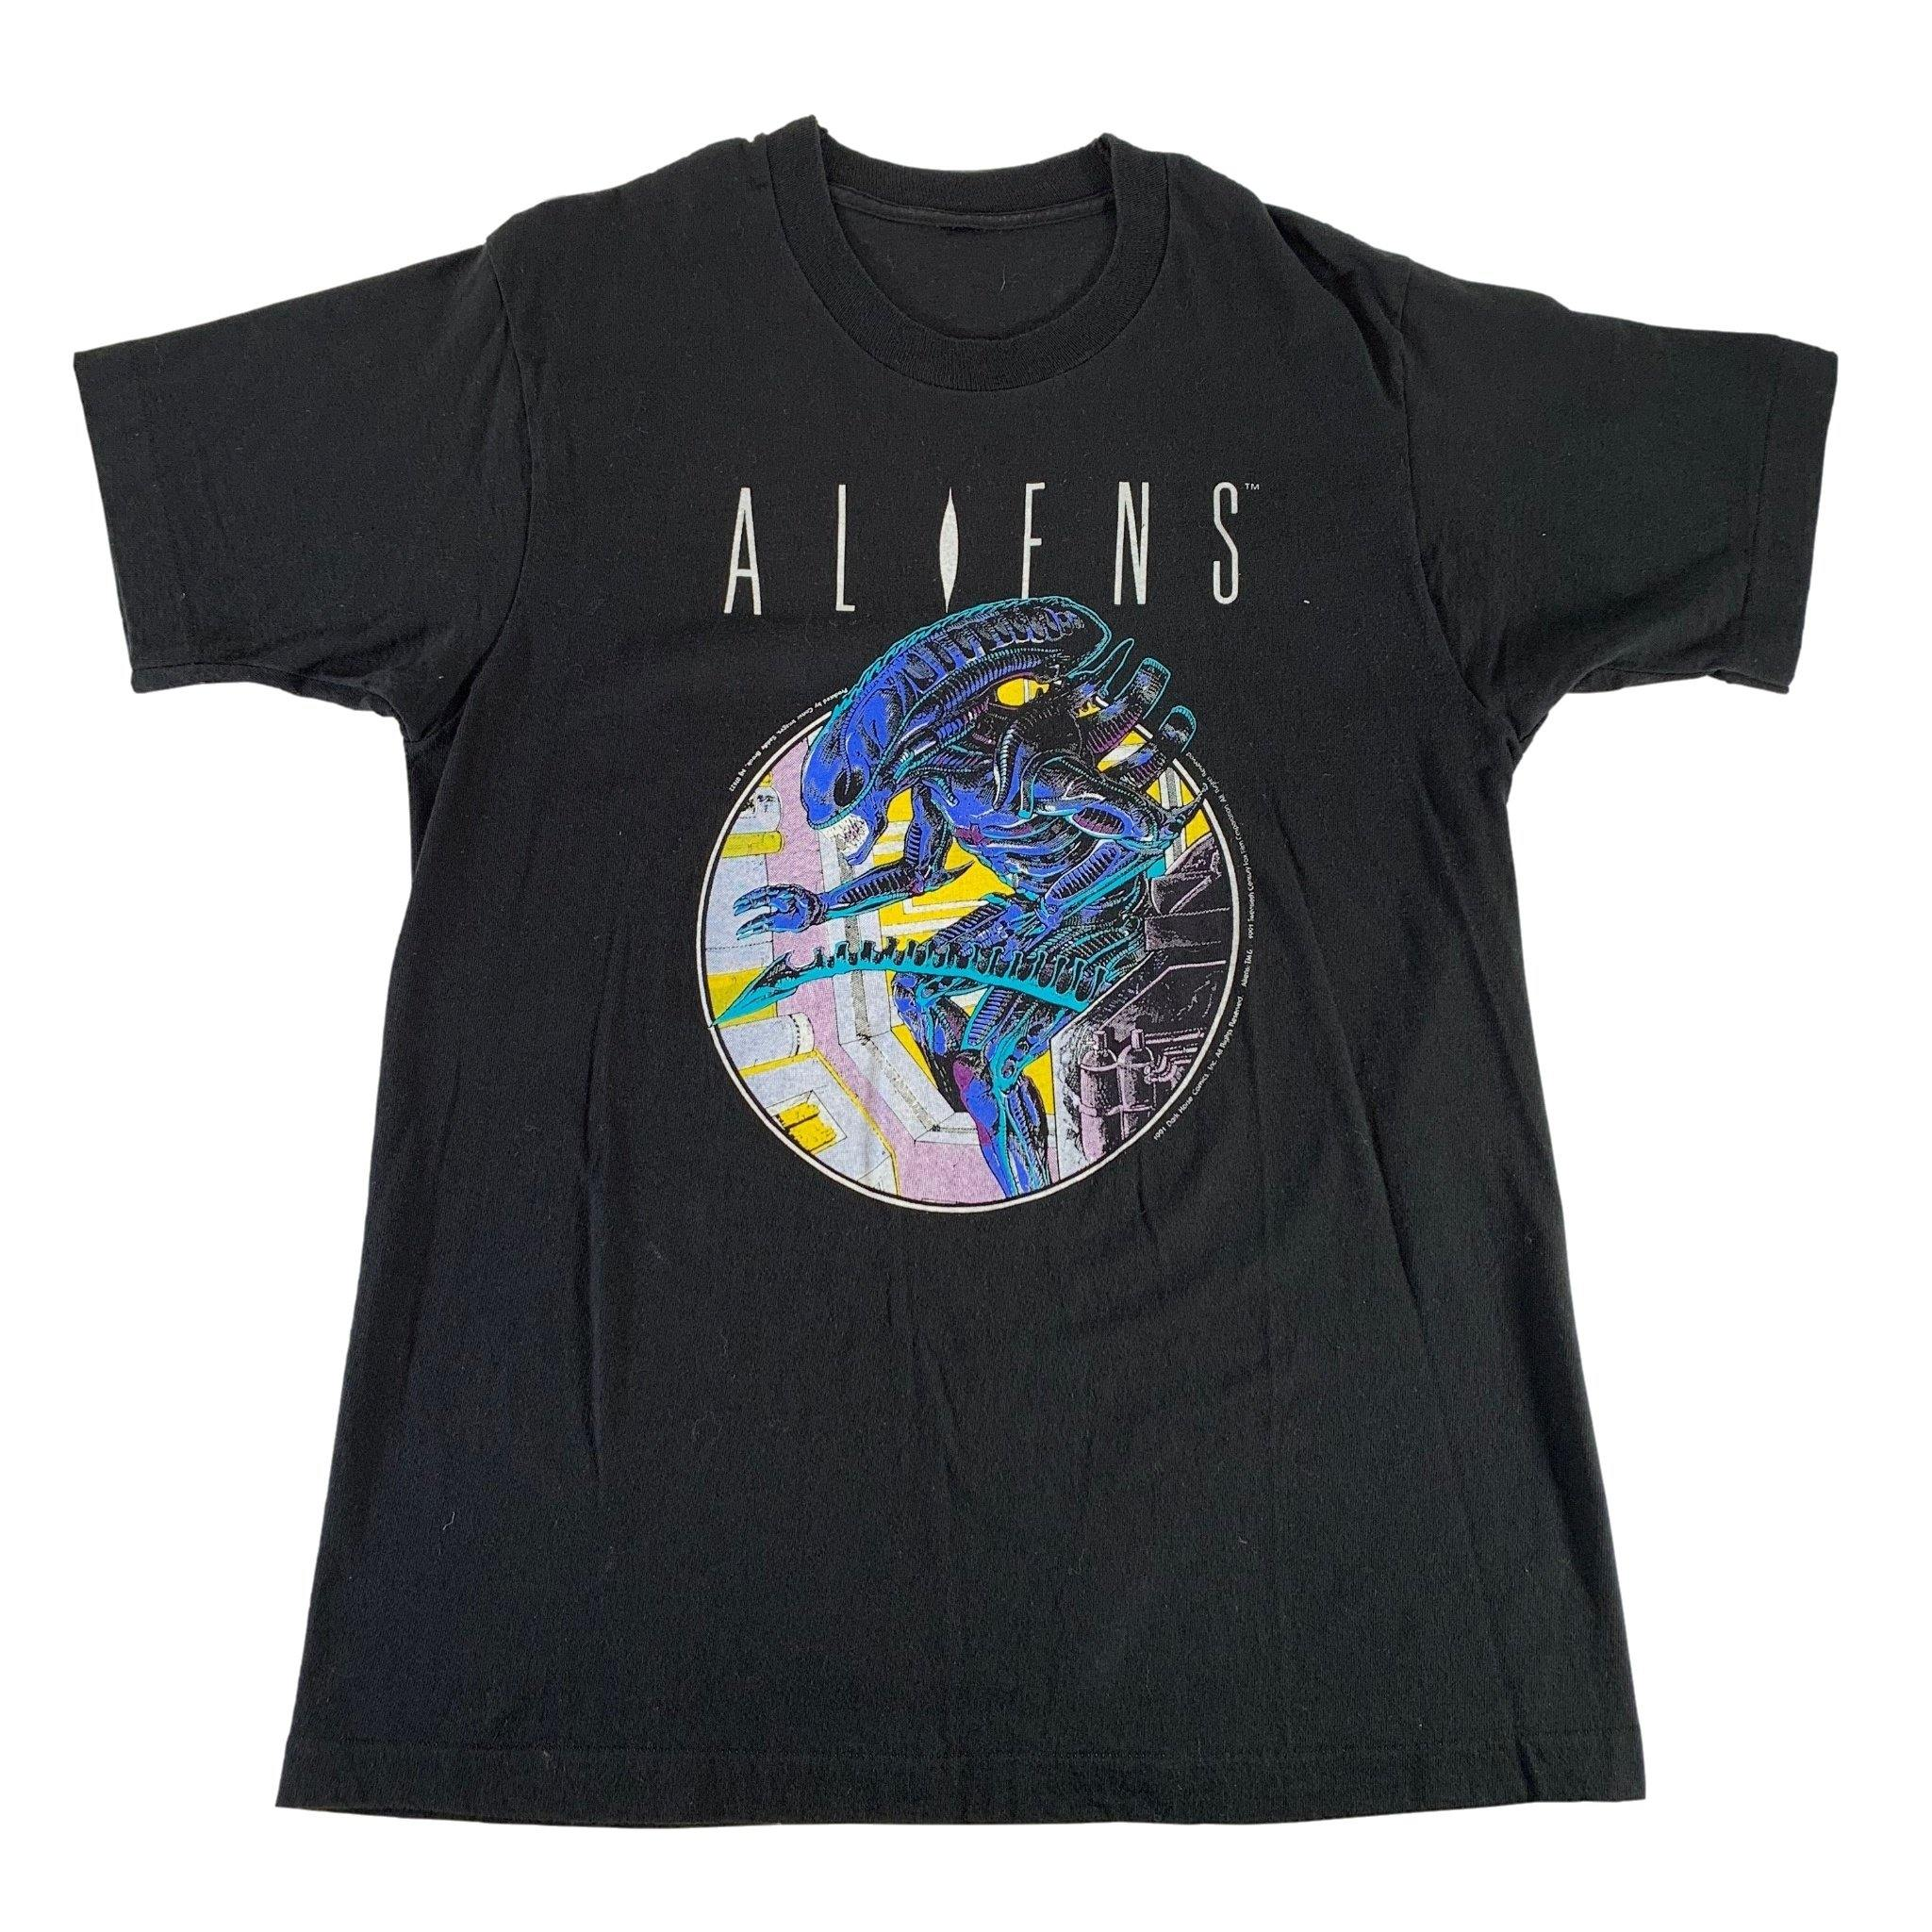 "Vintage Aliens ""Dark Horse Comics"" T-Shirt"